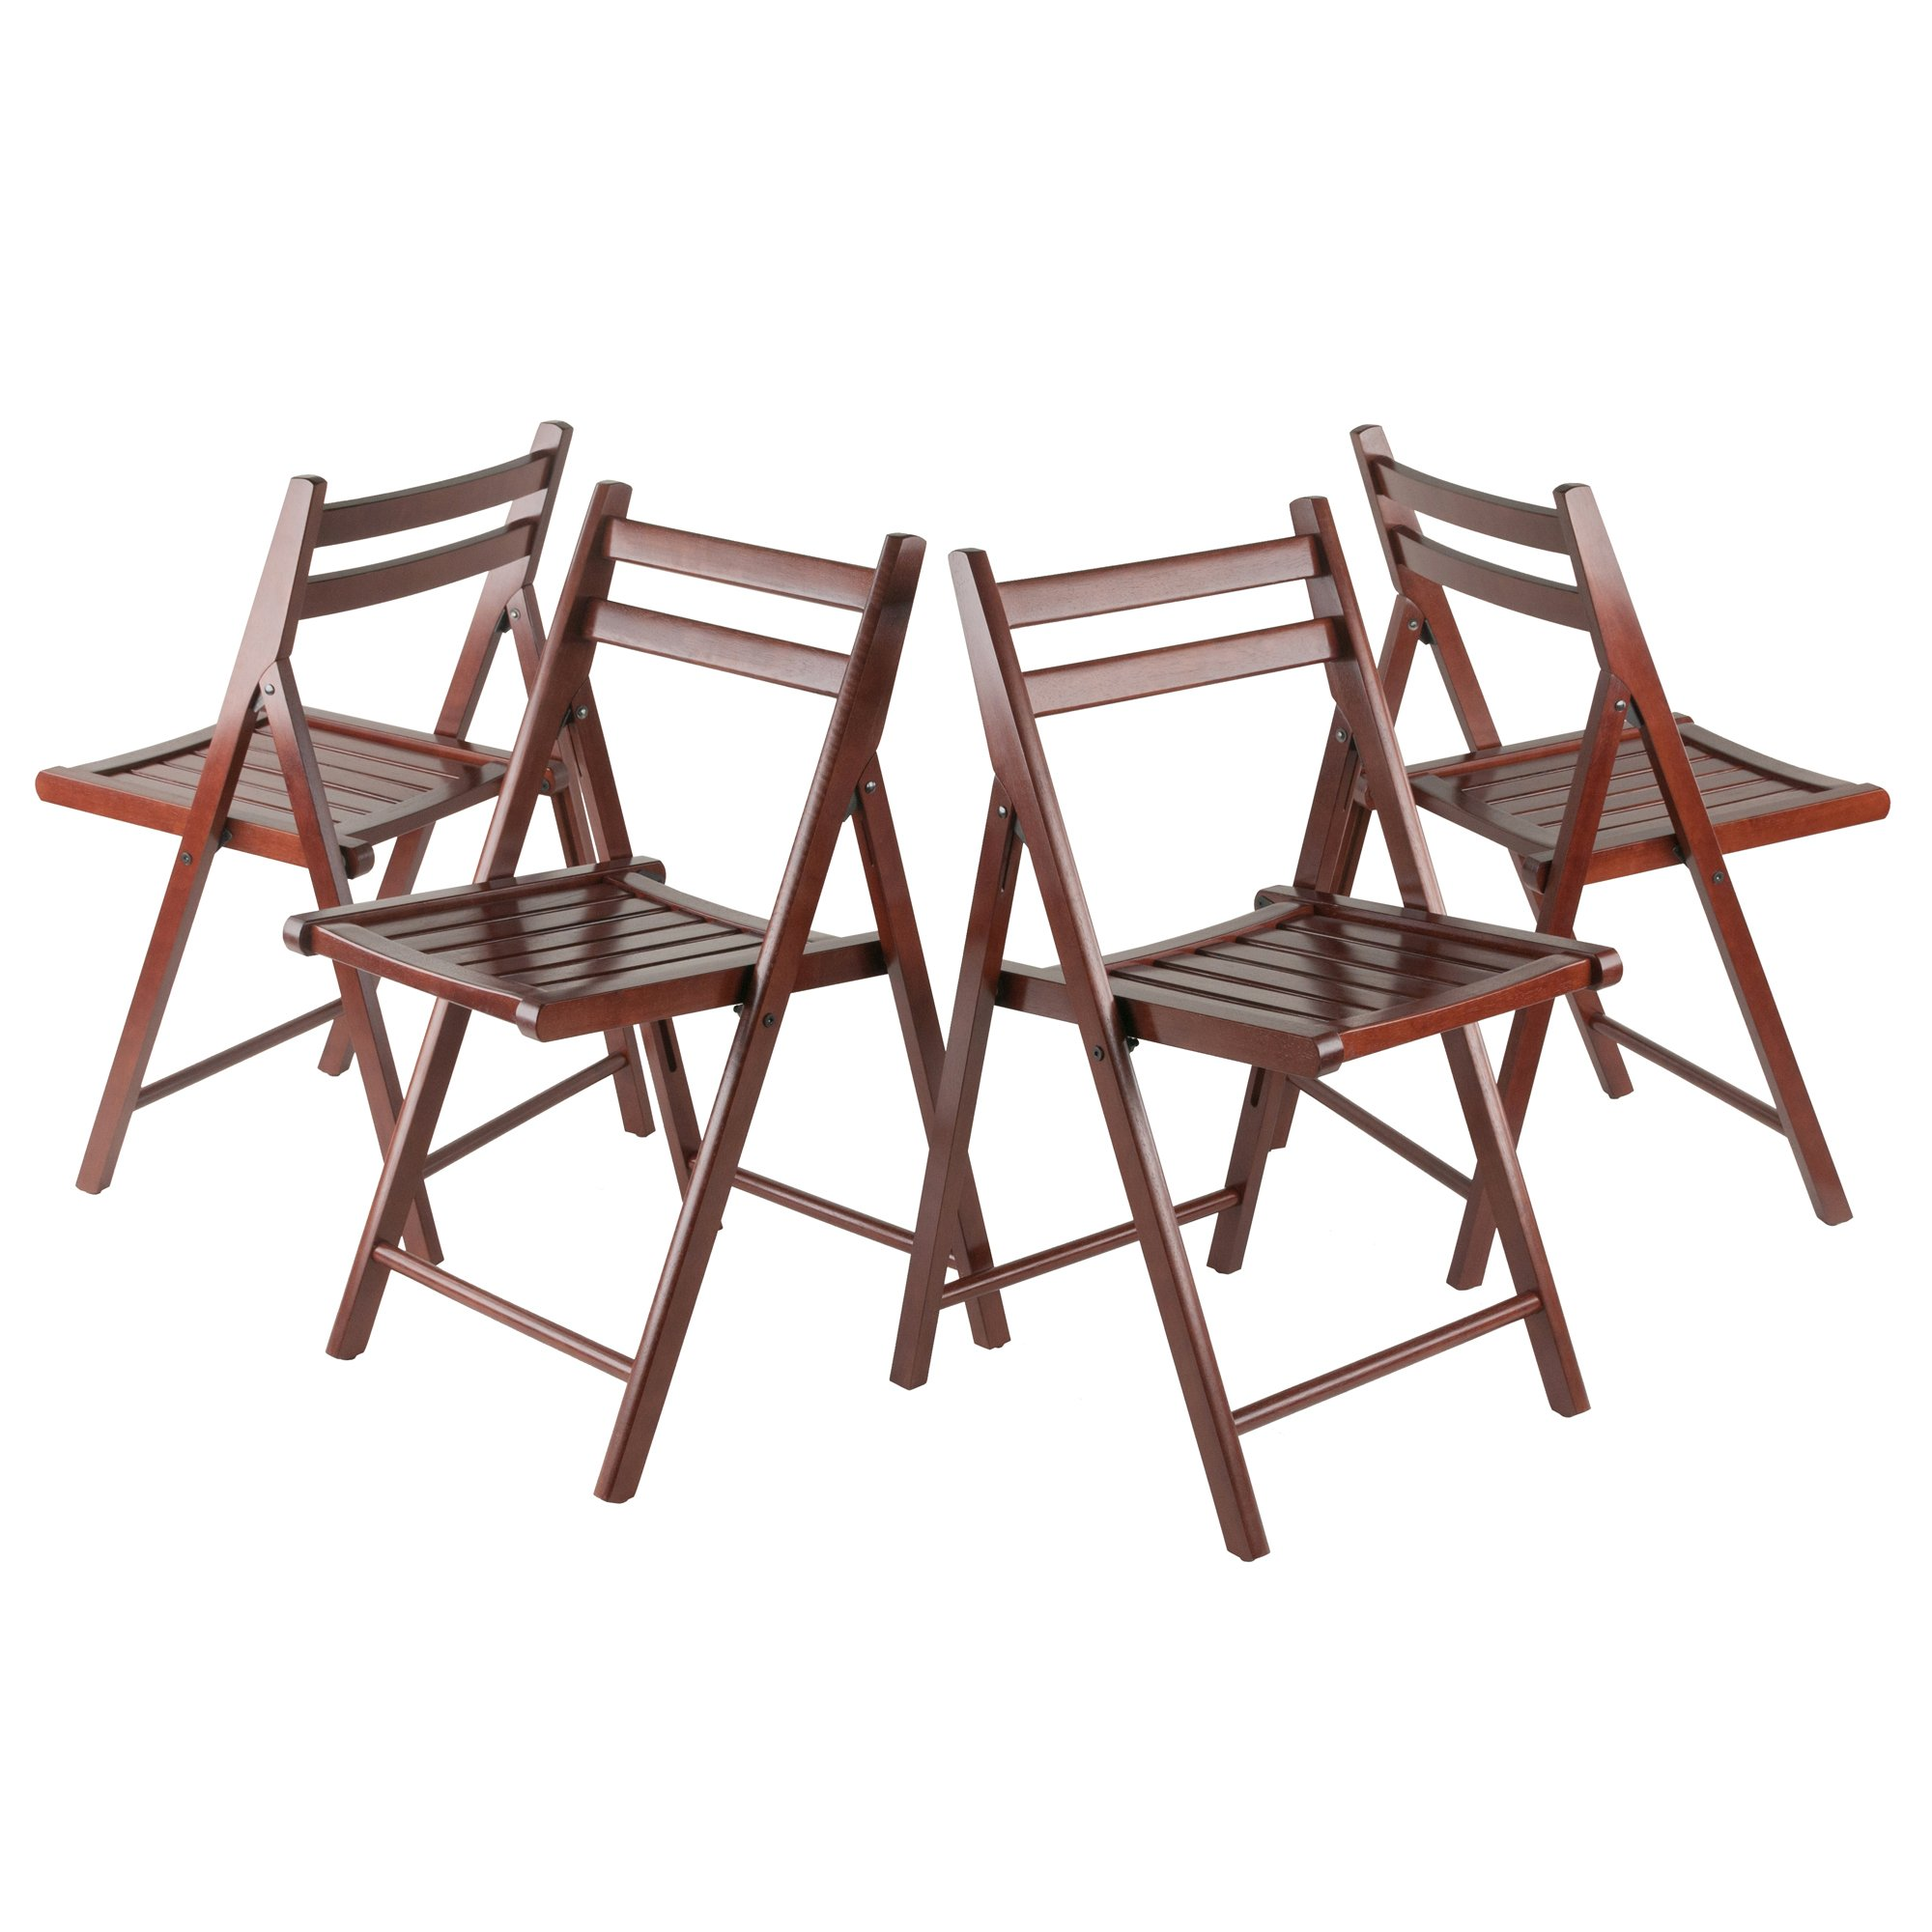 Winsome Wood Robin 4 Piece Folding Chair Set Walnut by Winsome Wood (Image #2)